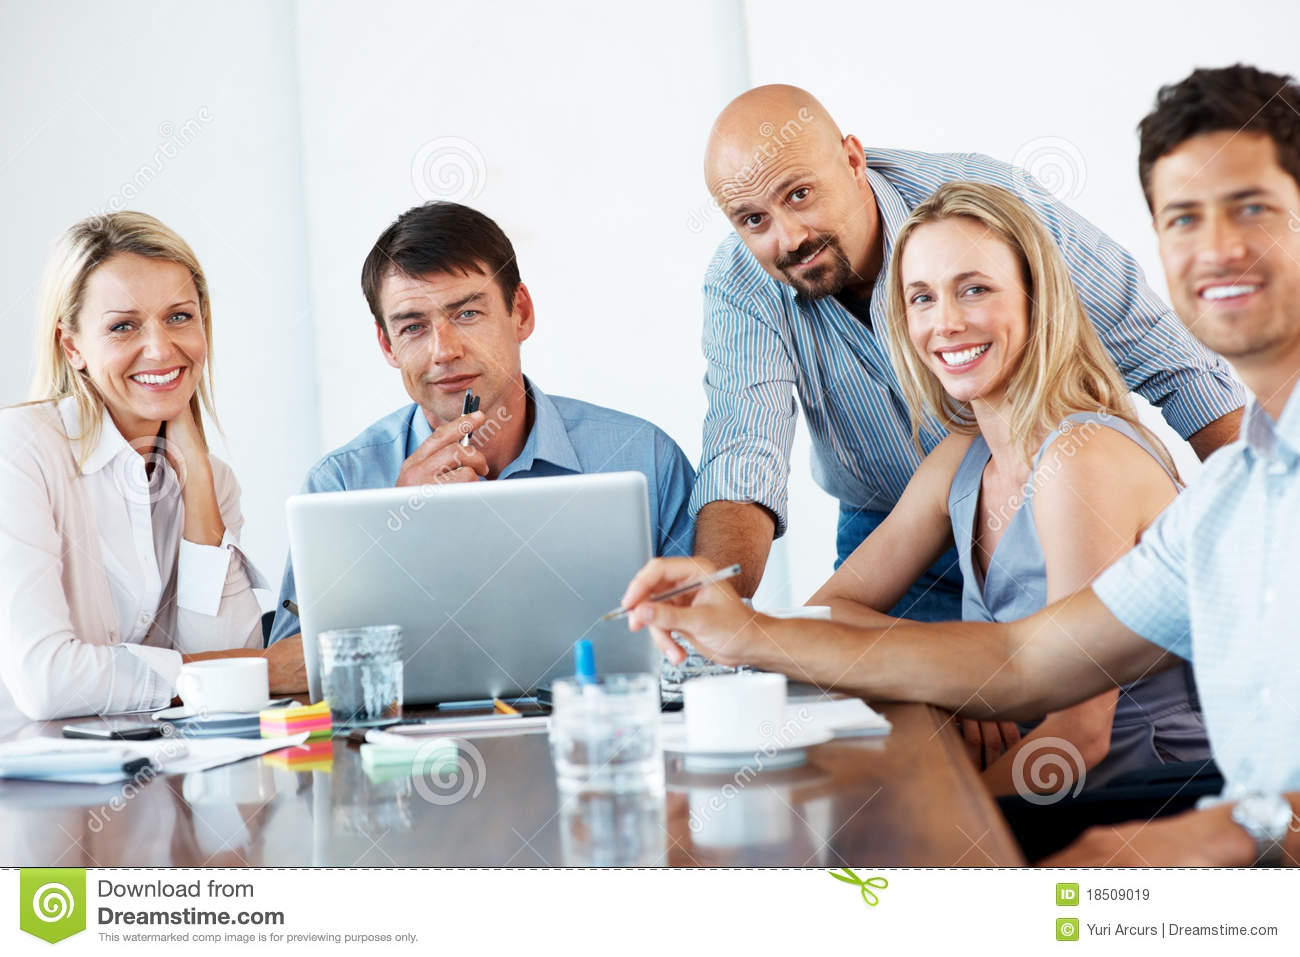 Royalty Free Stock Images: Smiling business people at ...